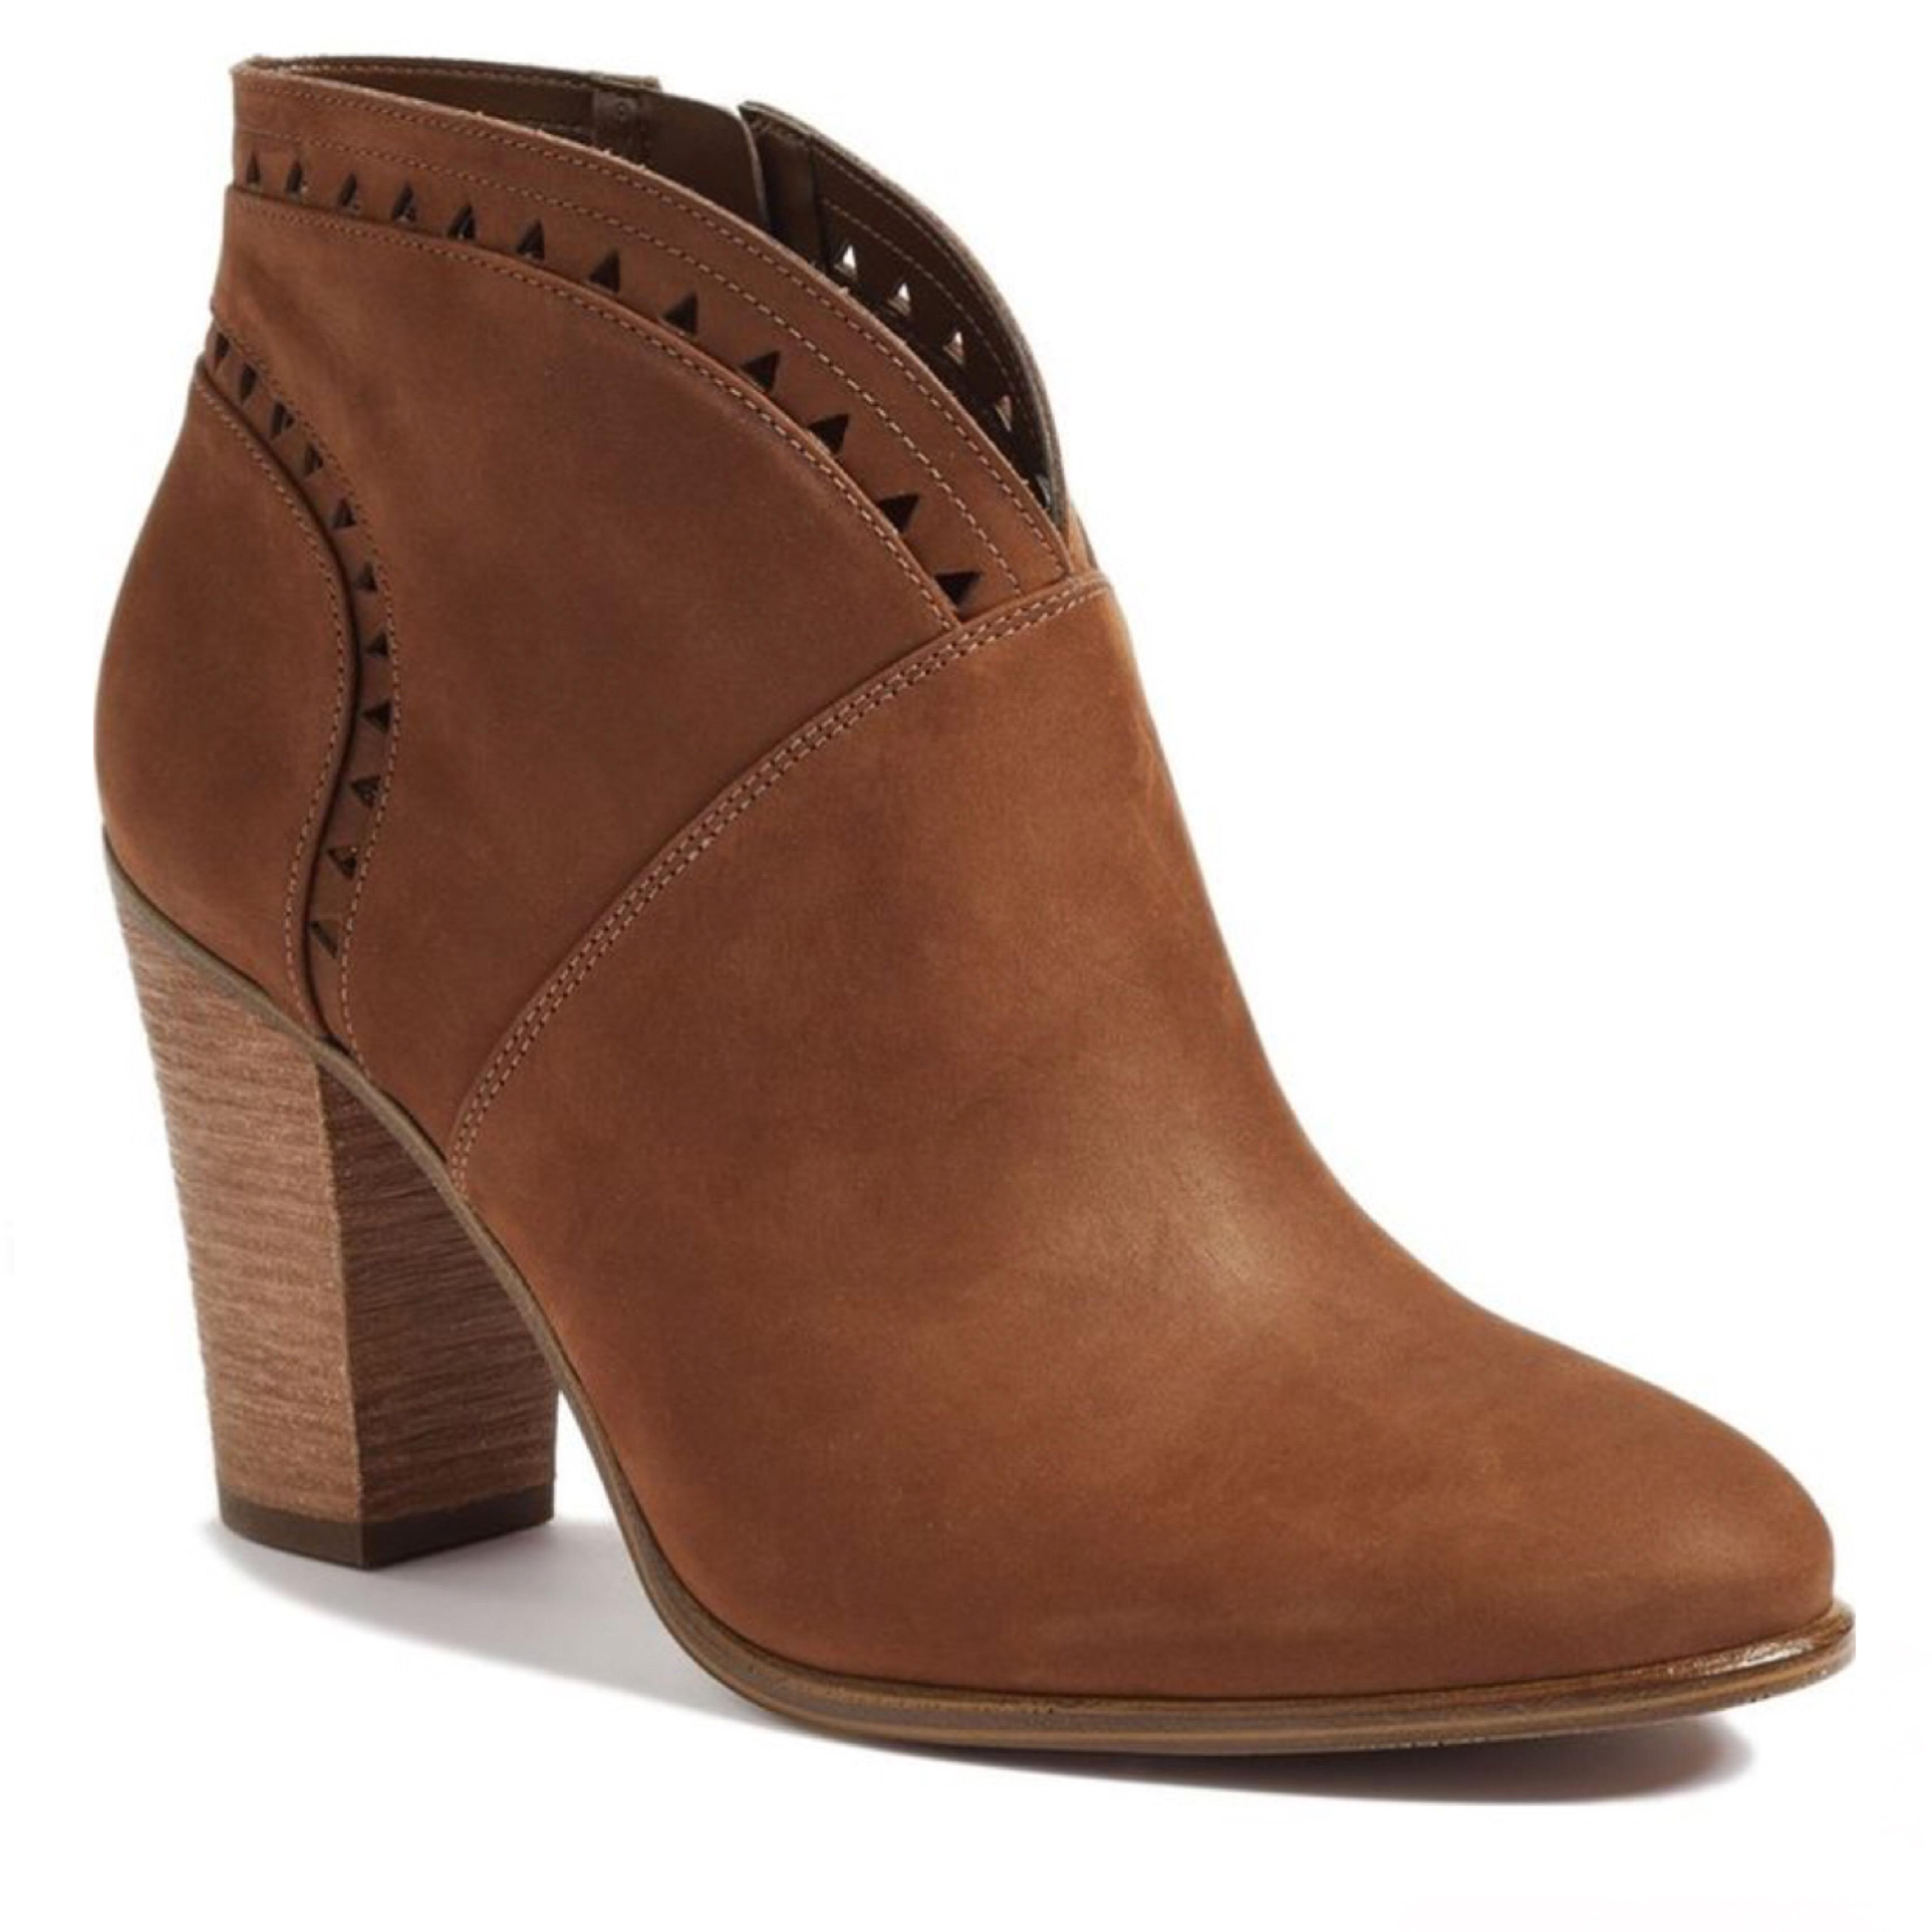 Score chic booties on sale at Lucky Brand. Shop ankle boots on sale and check out the wide selection of footwear perfect for welcoming a new season in style.